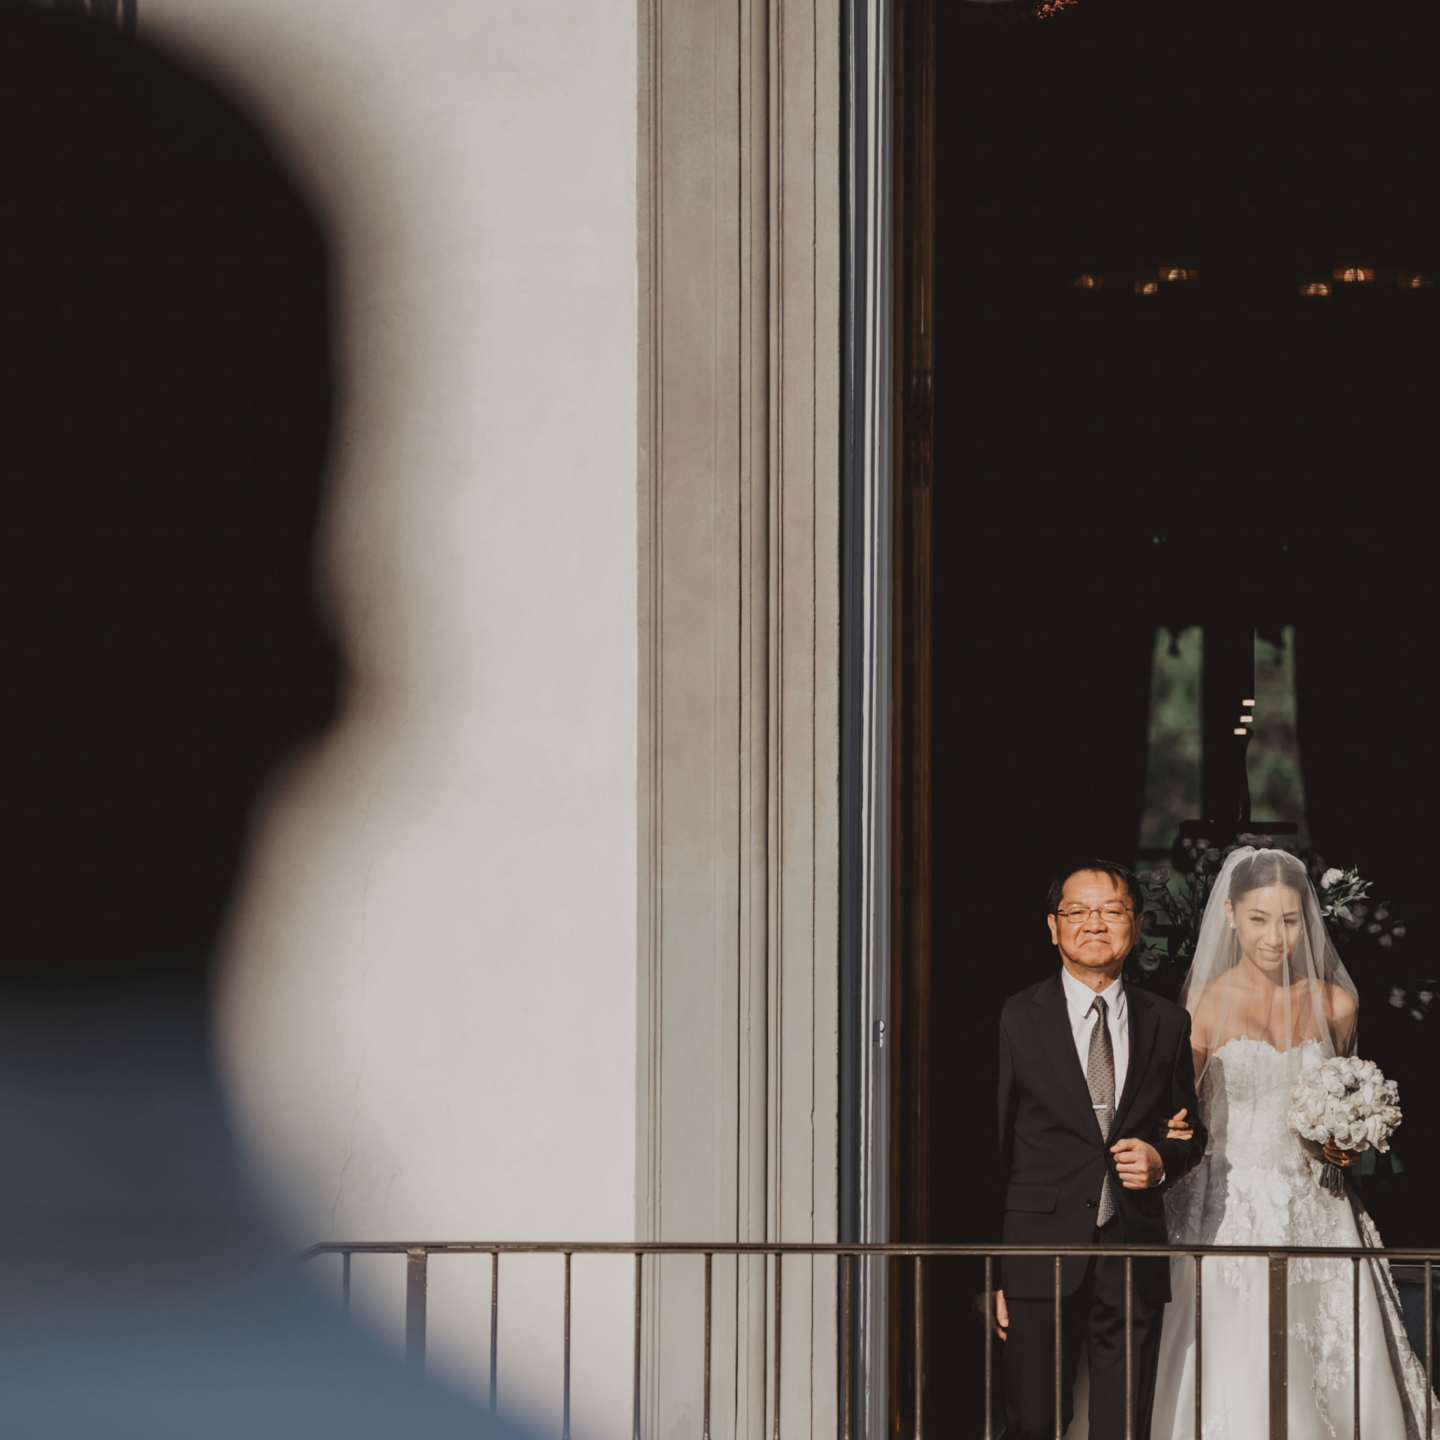 Luxury wedding in Florence (with a chinese tea ceremony) :: Luxury wedding in Florence (with a chinese tea ceremony) :: Luxury wedding photography - 17 :: Luxury wedding in Florence (with a chinese tea ceremony)